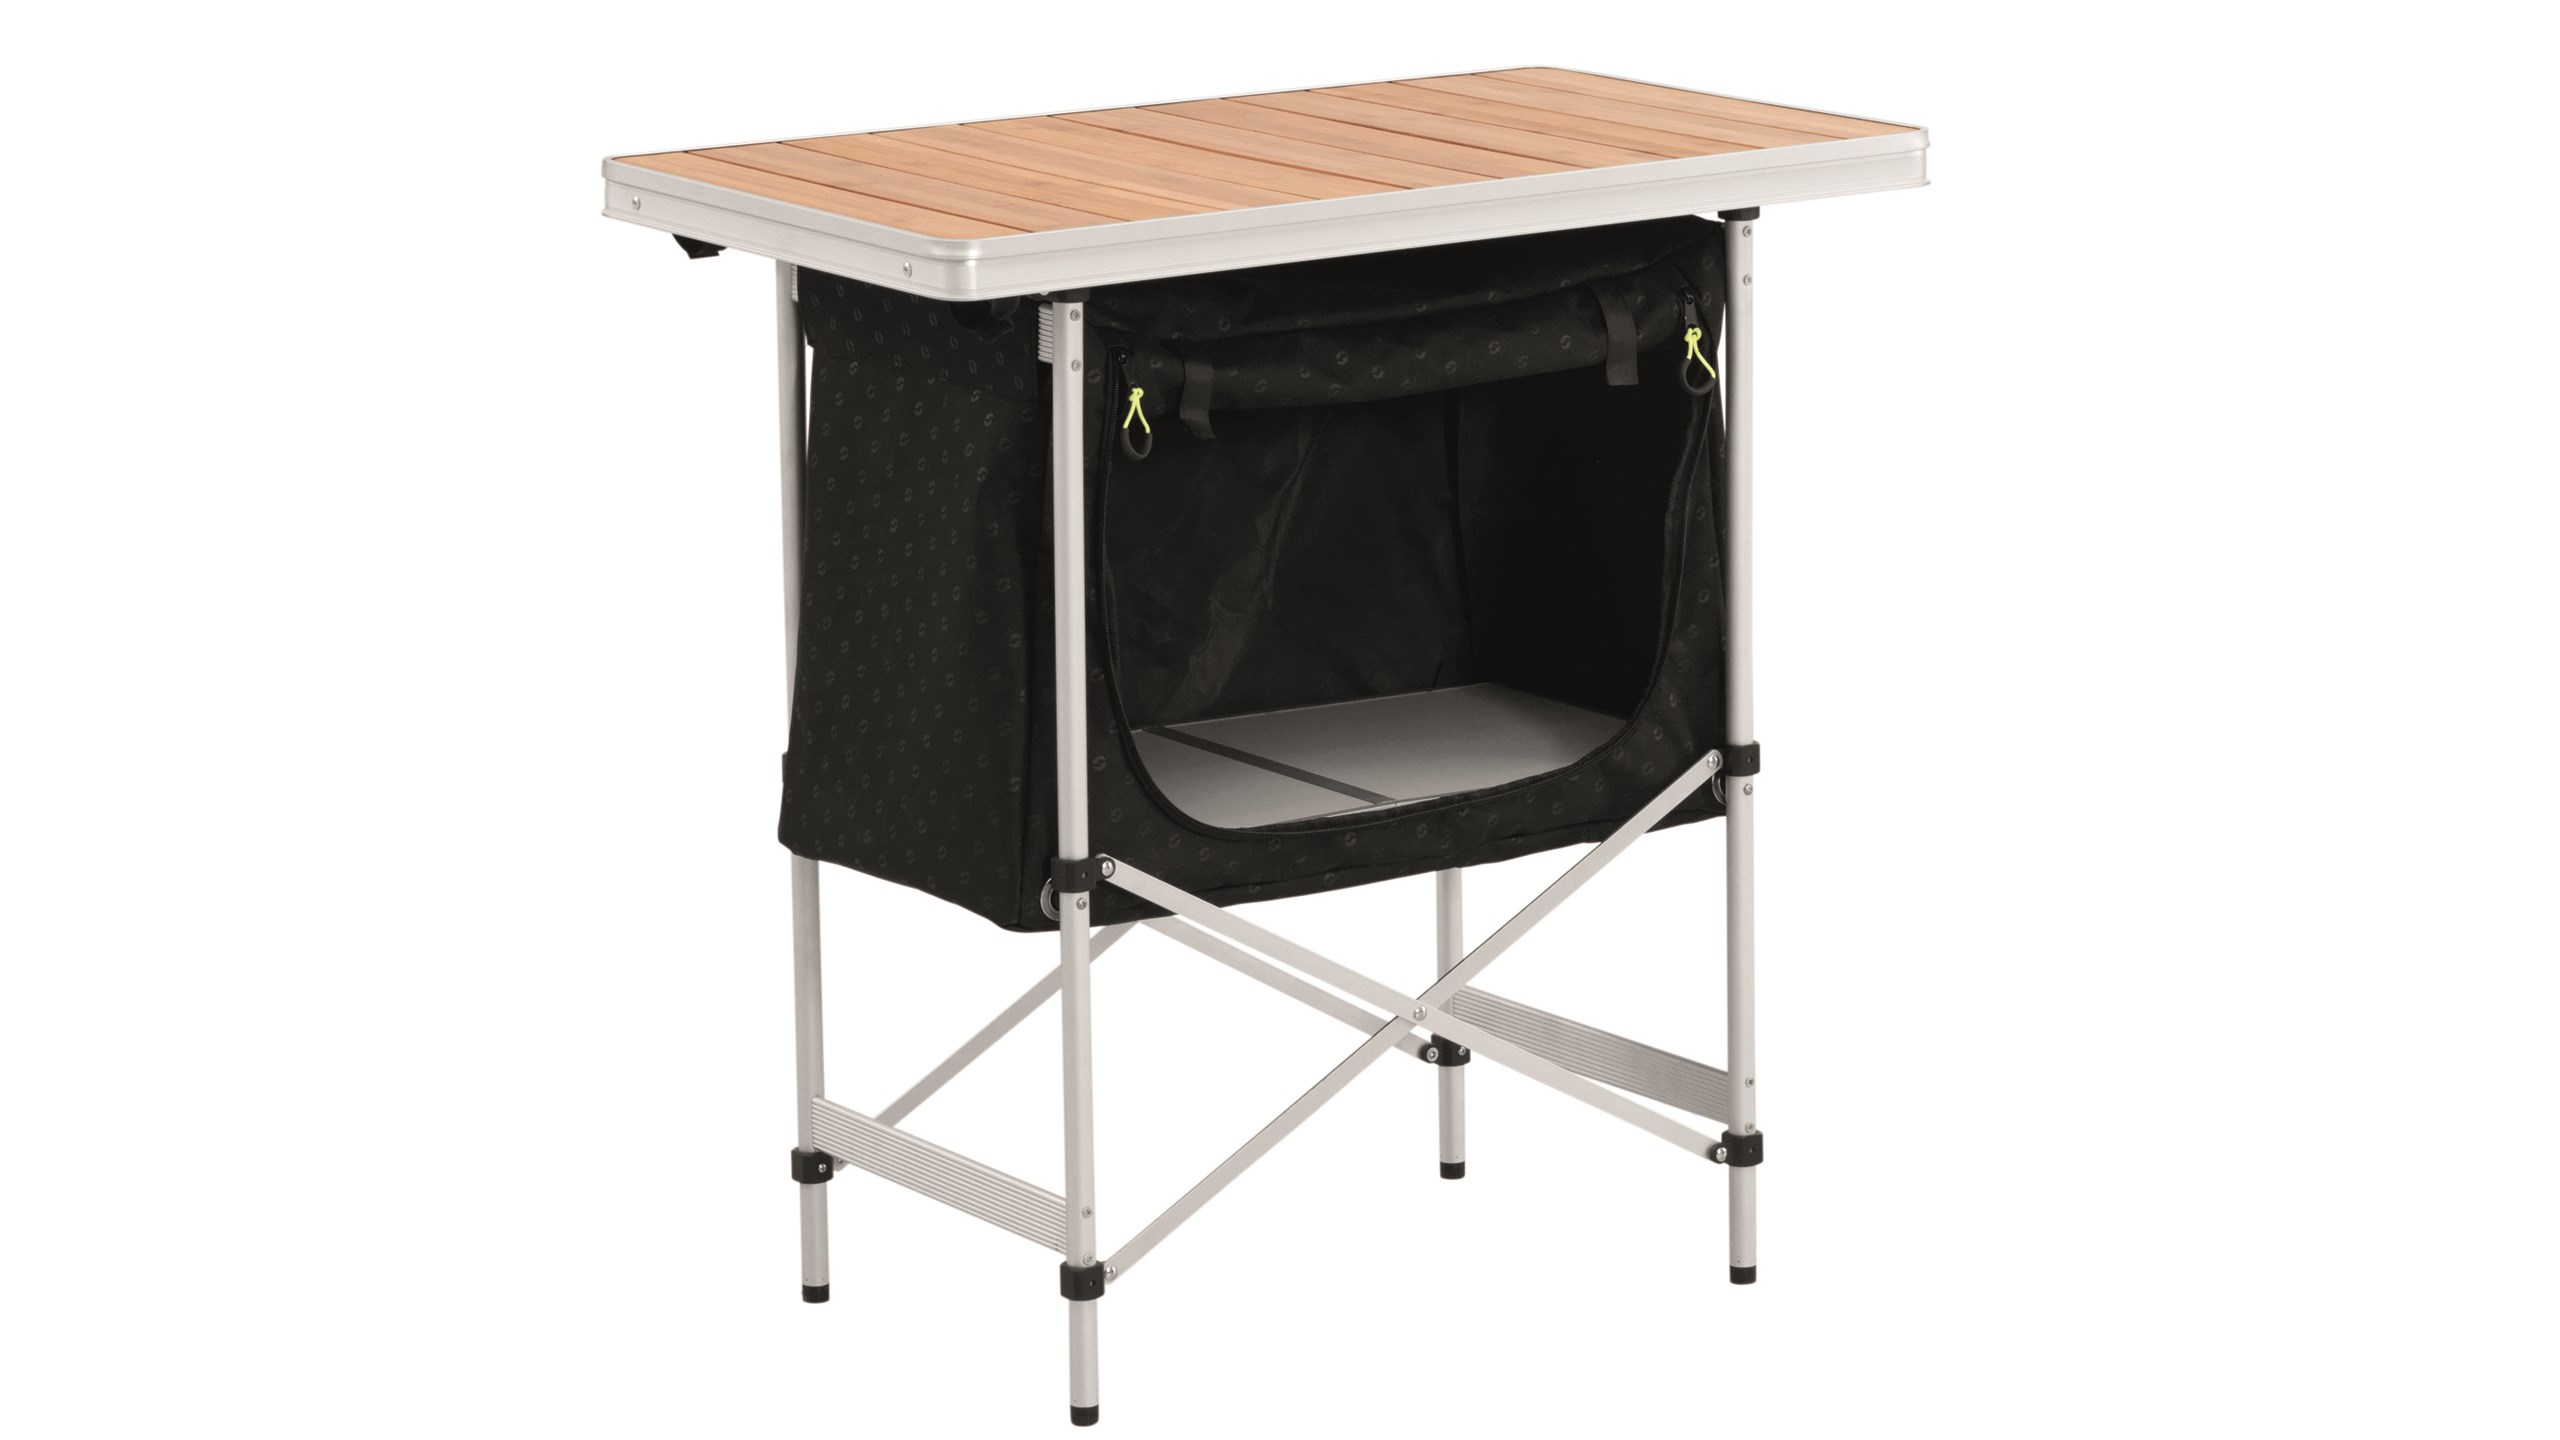 Outwell Regina Kitchen Table with Bamboo Top - Camping International